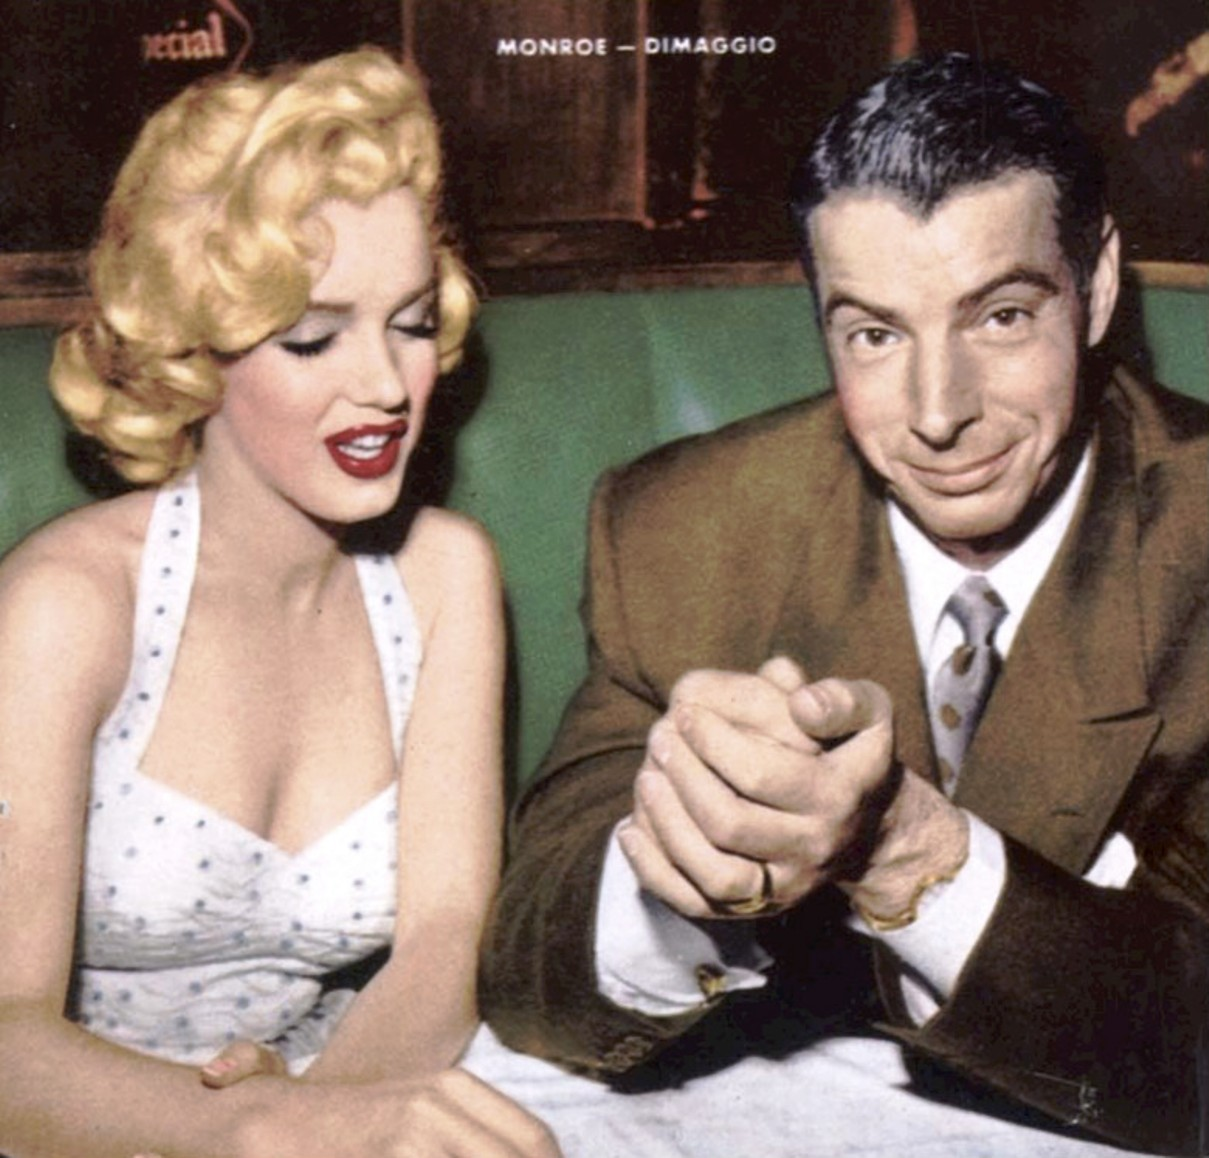 Did Marilyn Monroe and Joe DiMaggio have a good marriage